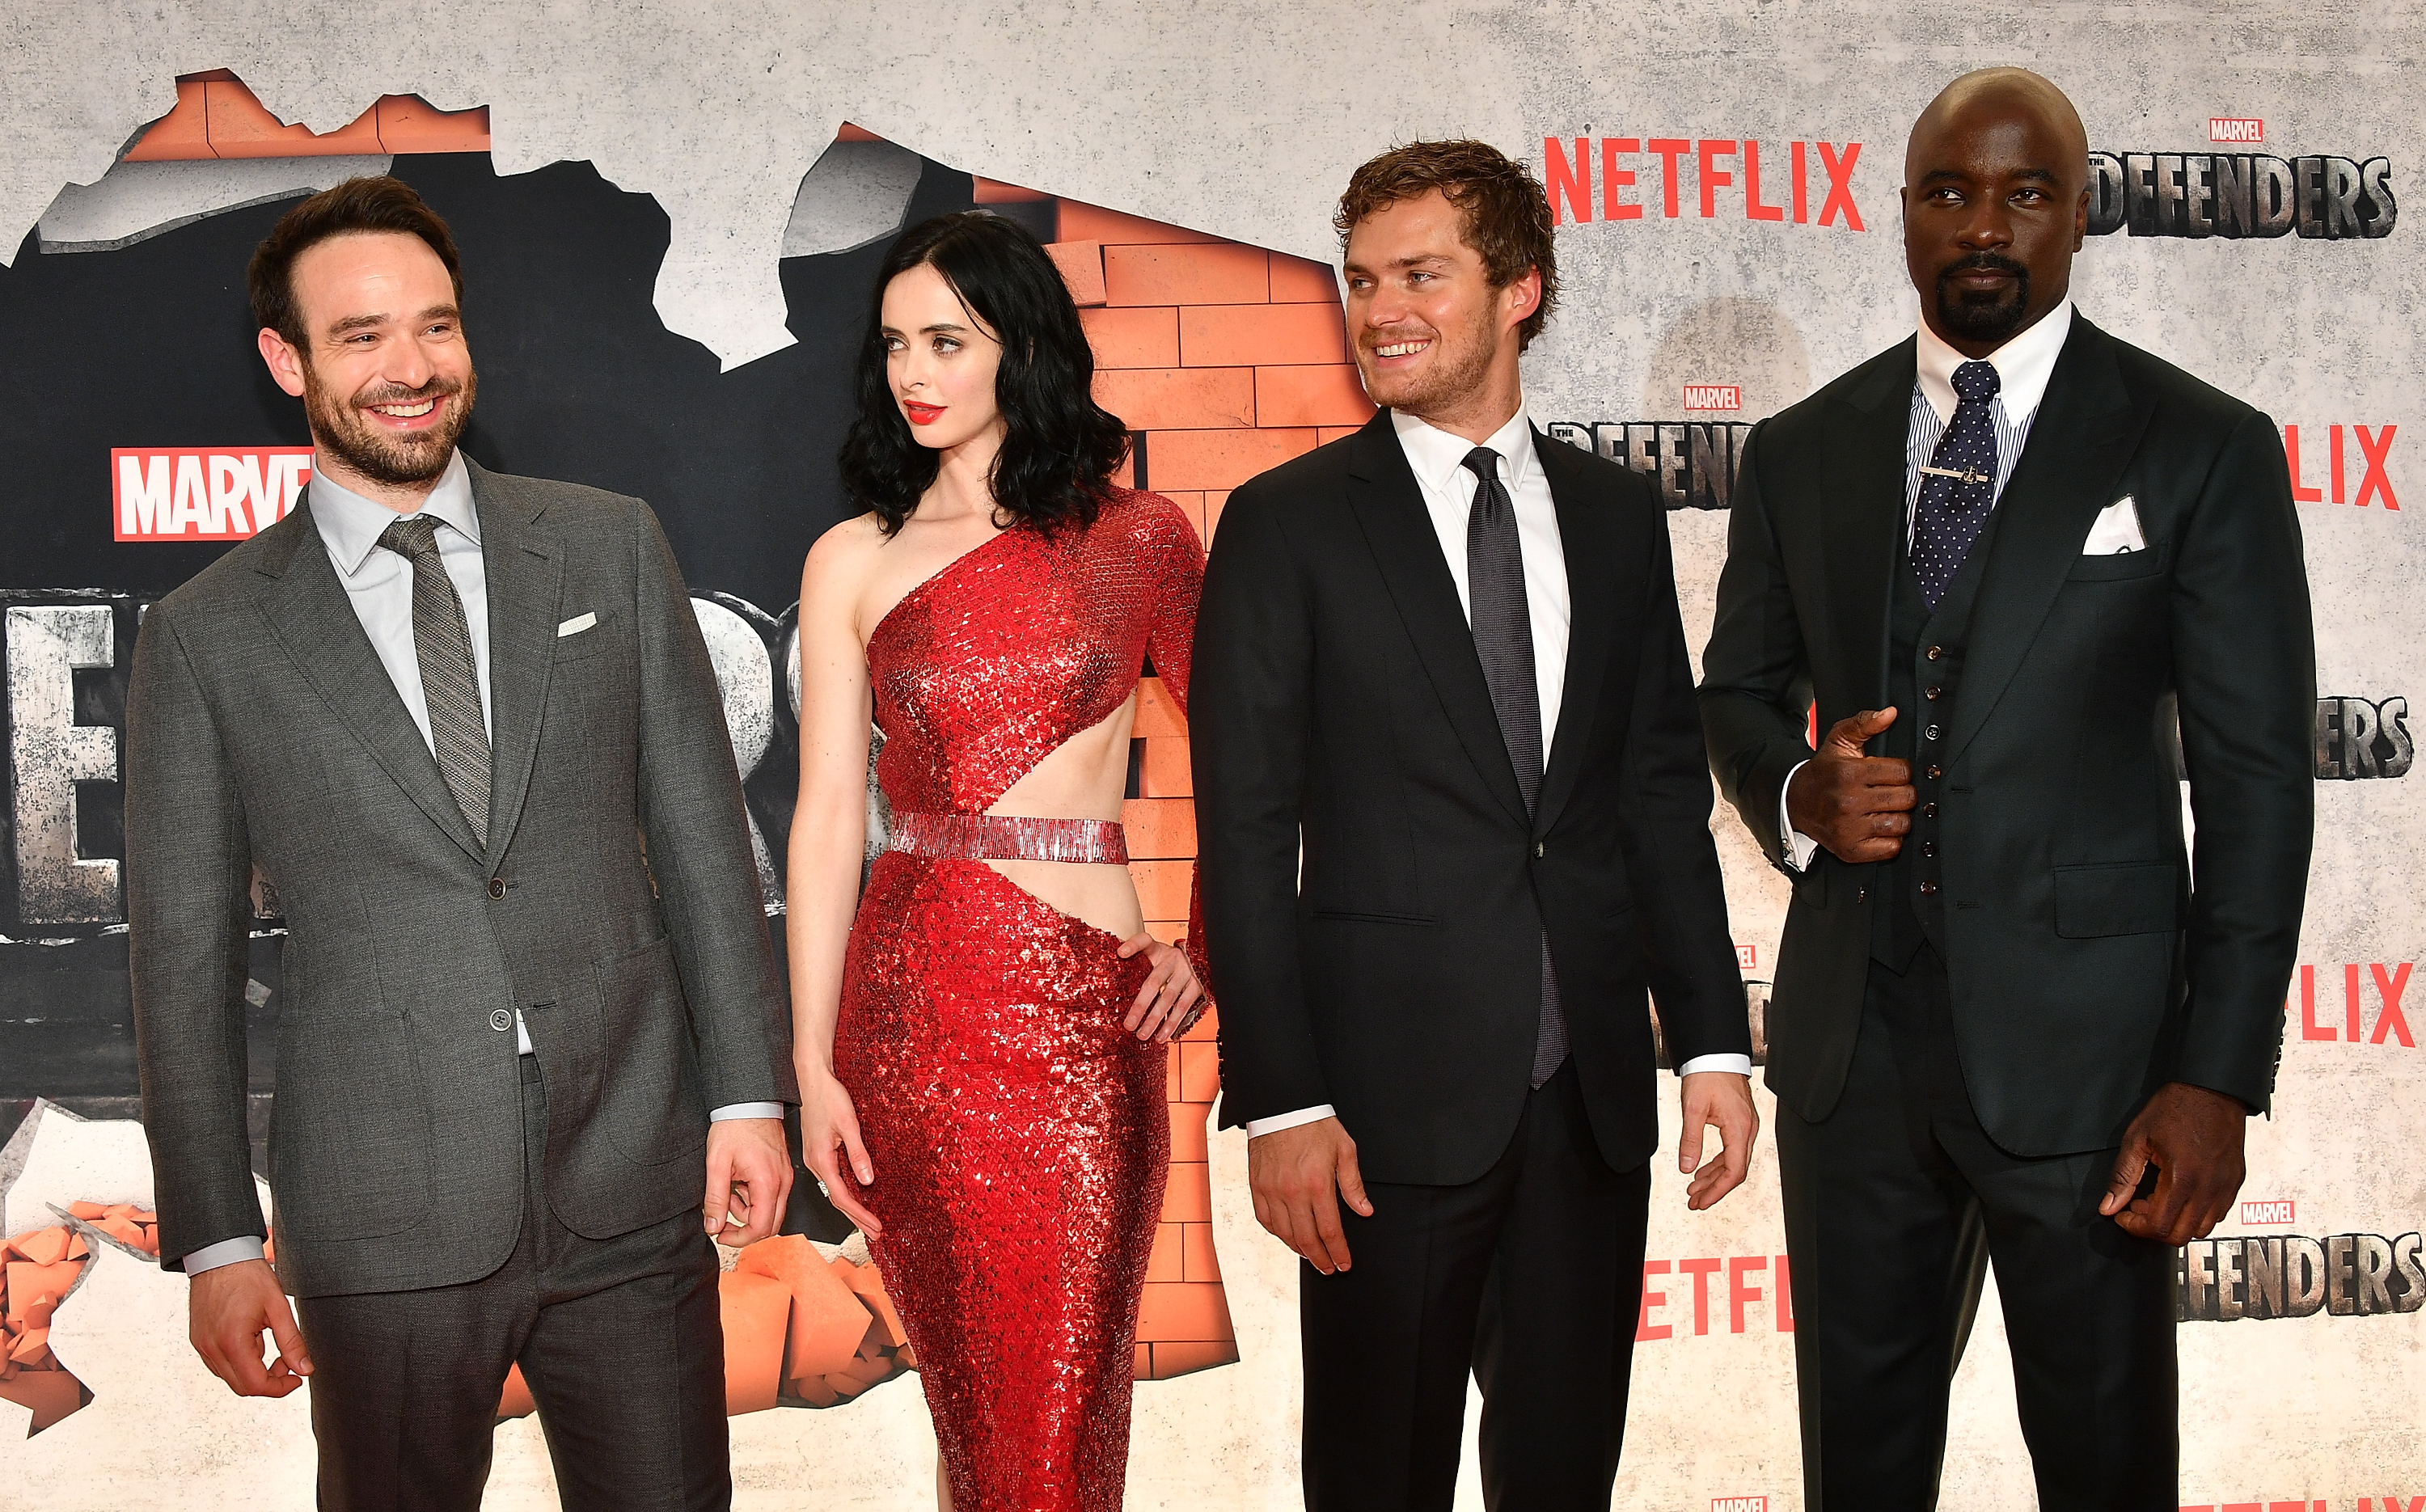 THE DEFENDERS is the Fun Marvel Team-Up Show We've Been Waiting for